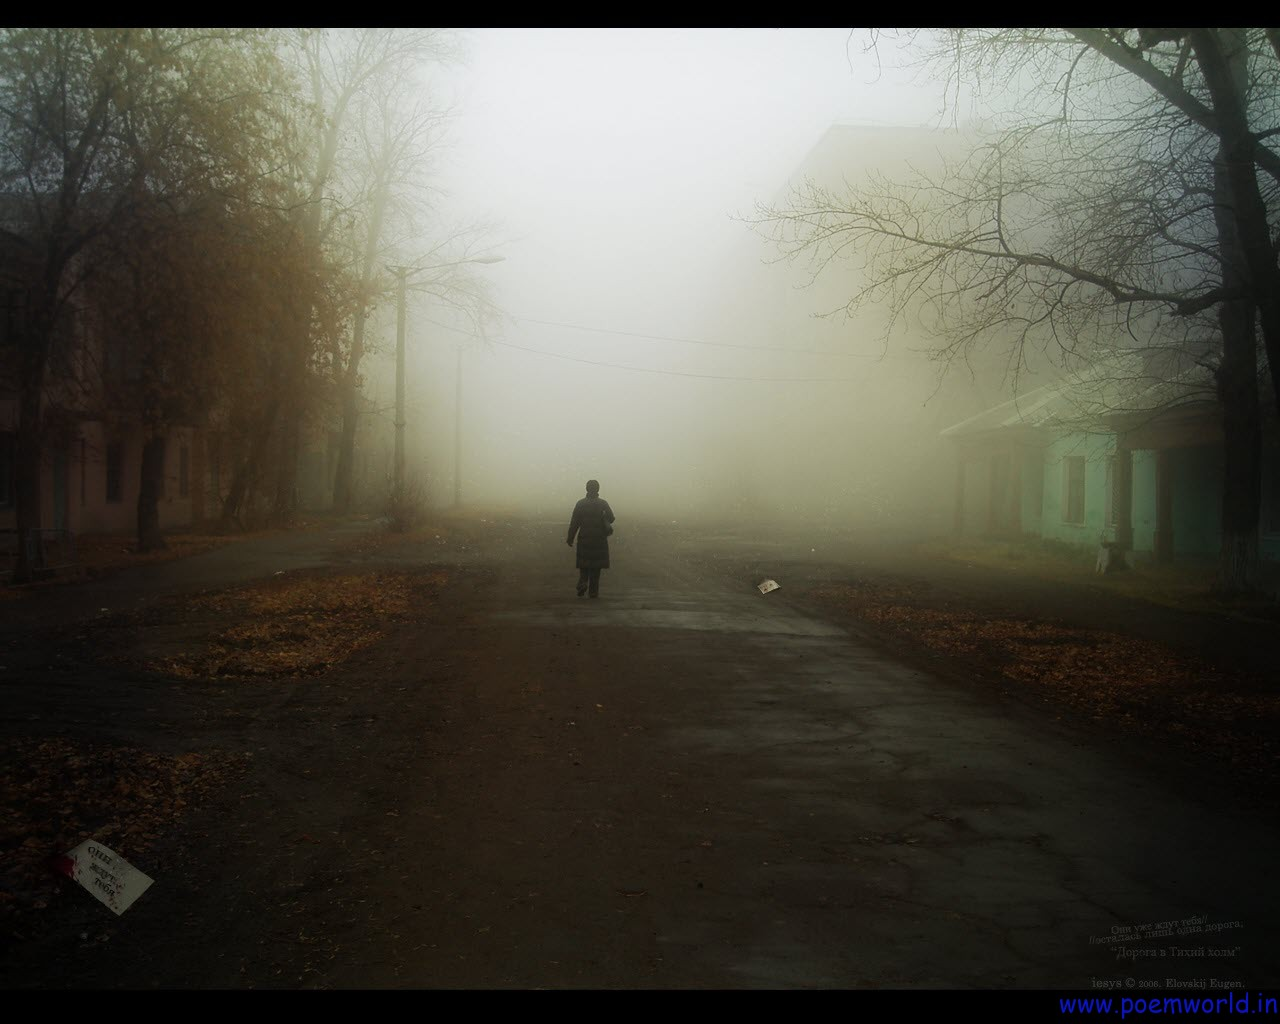 Sad Man Walking Alone 1280x1024